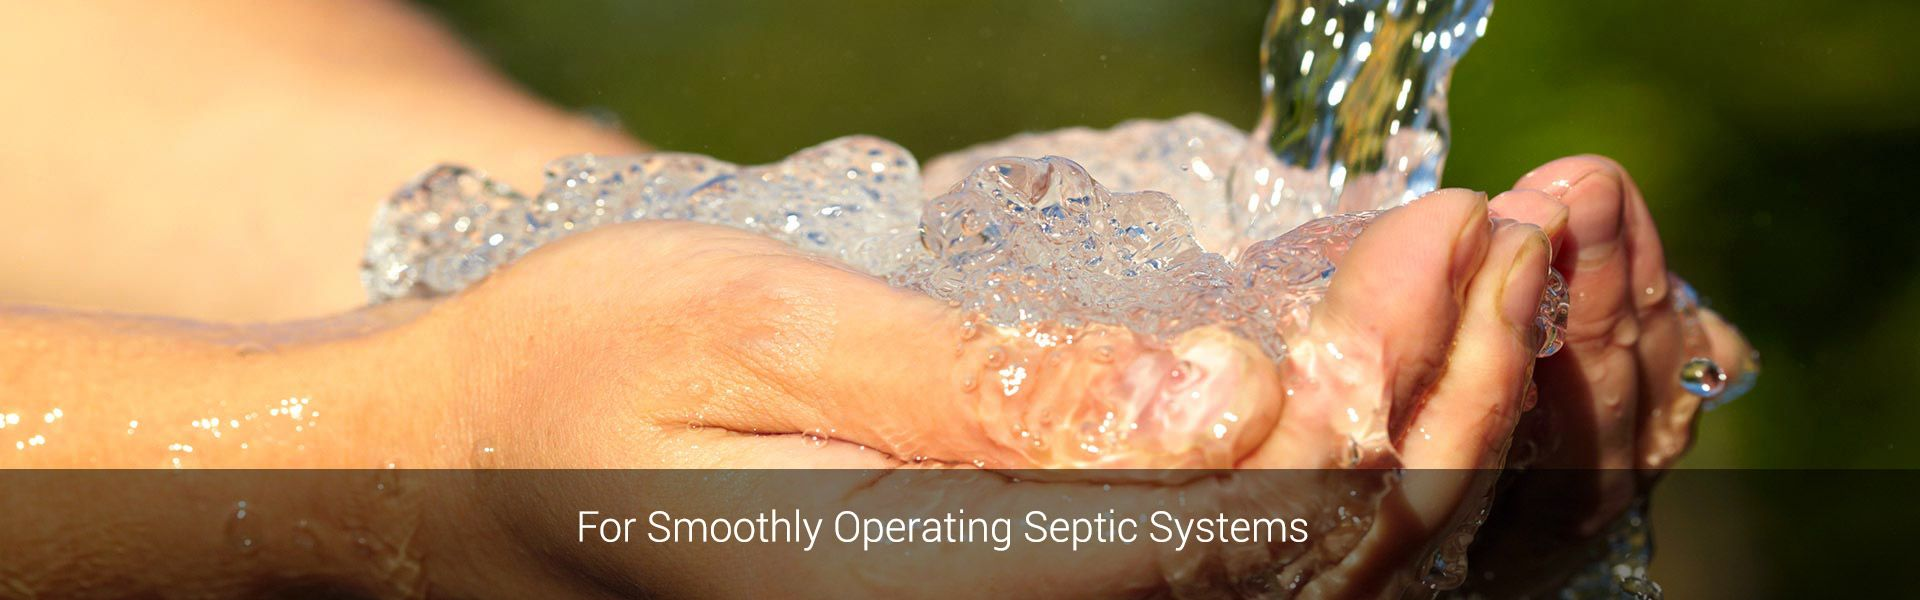 For Smoothly Operating Septic Systems | Clean water